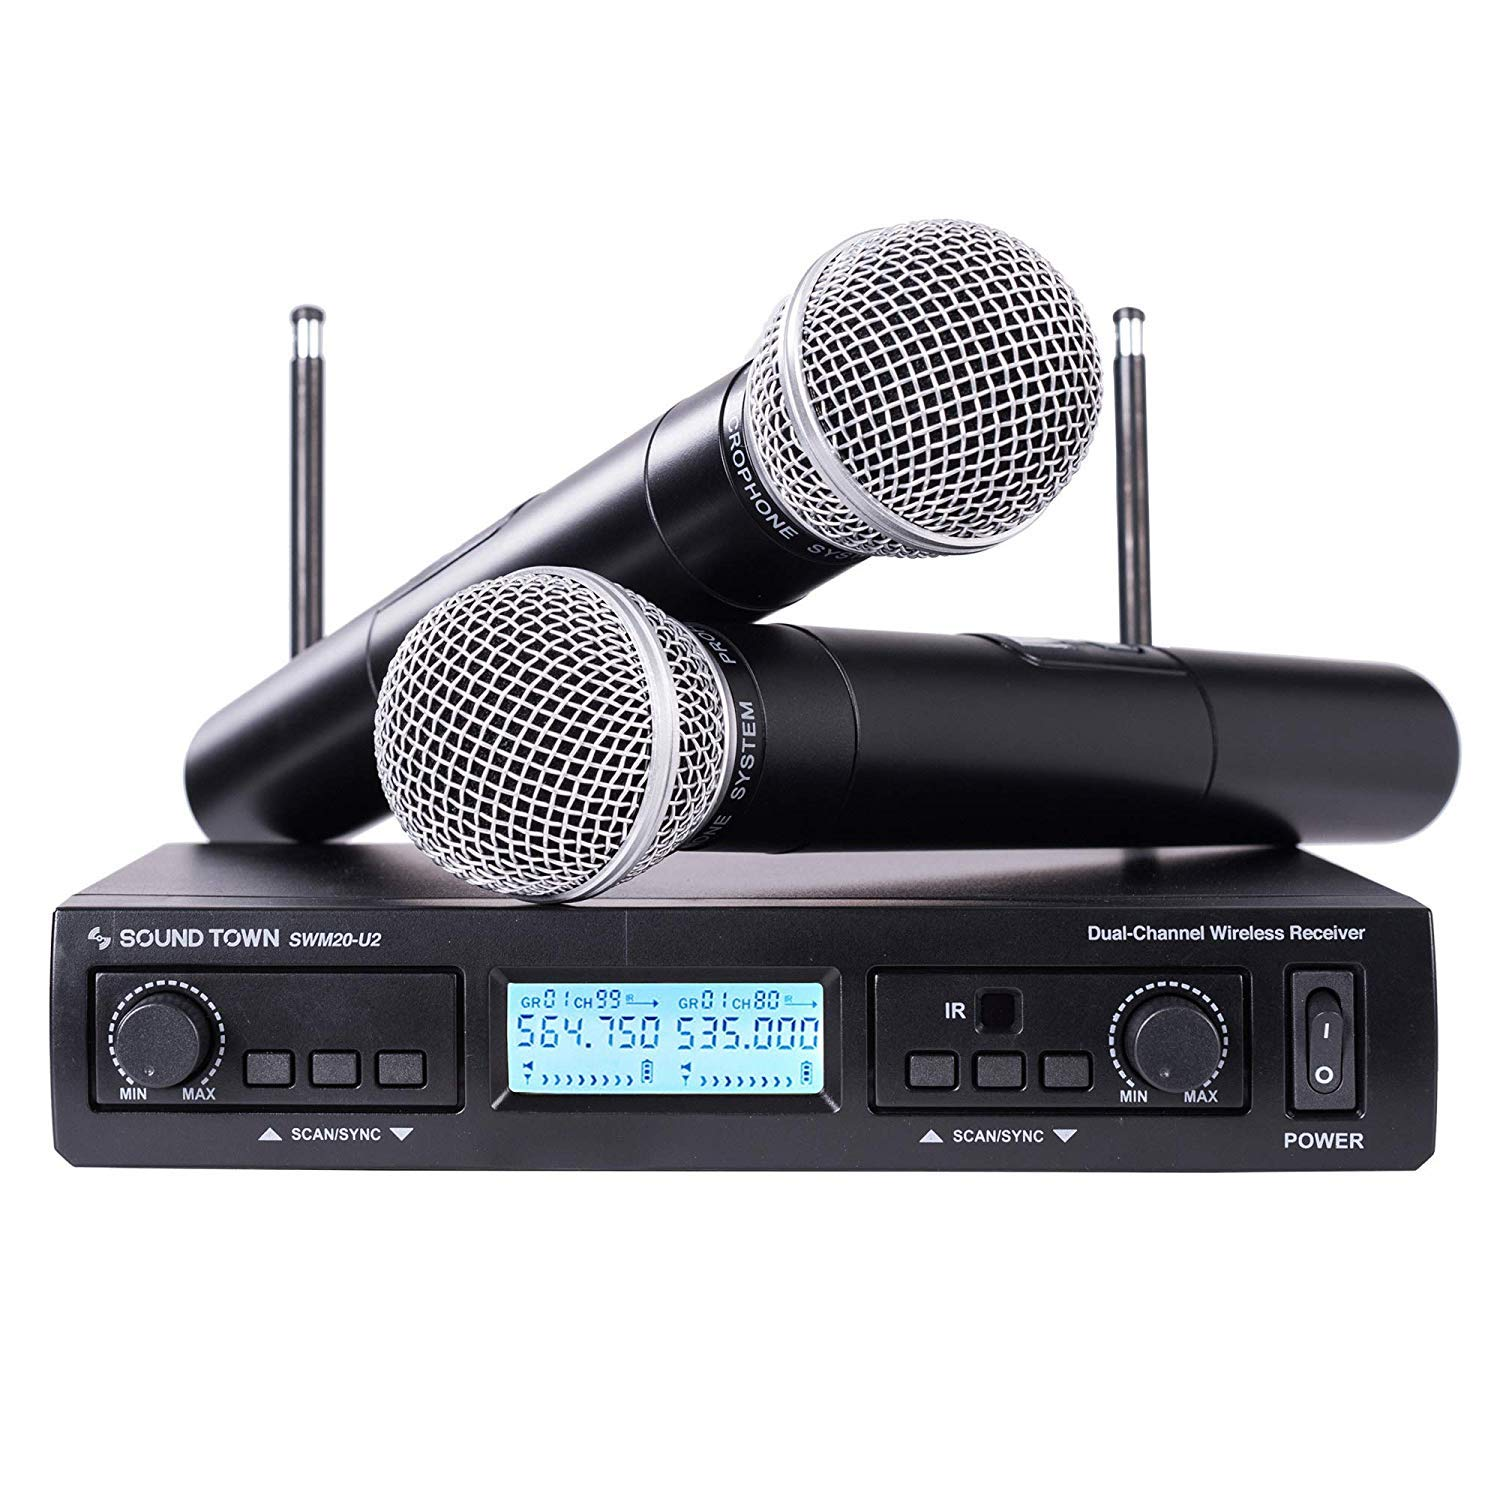 Sound Town 200-Channel Professional UHF Wireless Microphone System with 2 Handheld Microphones, for Church, Business Meeting, Outdoor Wedding and Karaoke by Sound Town